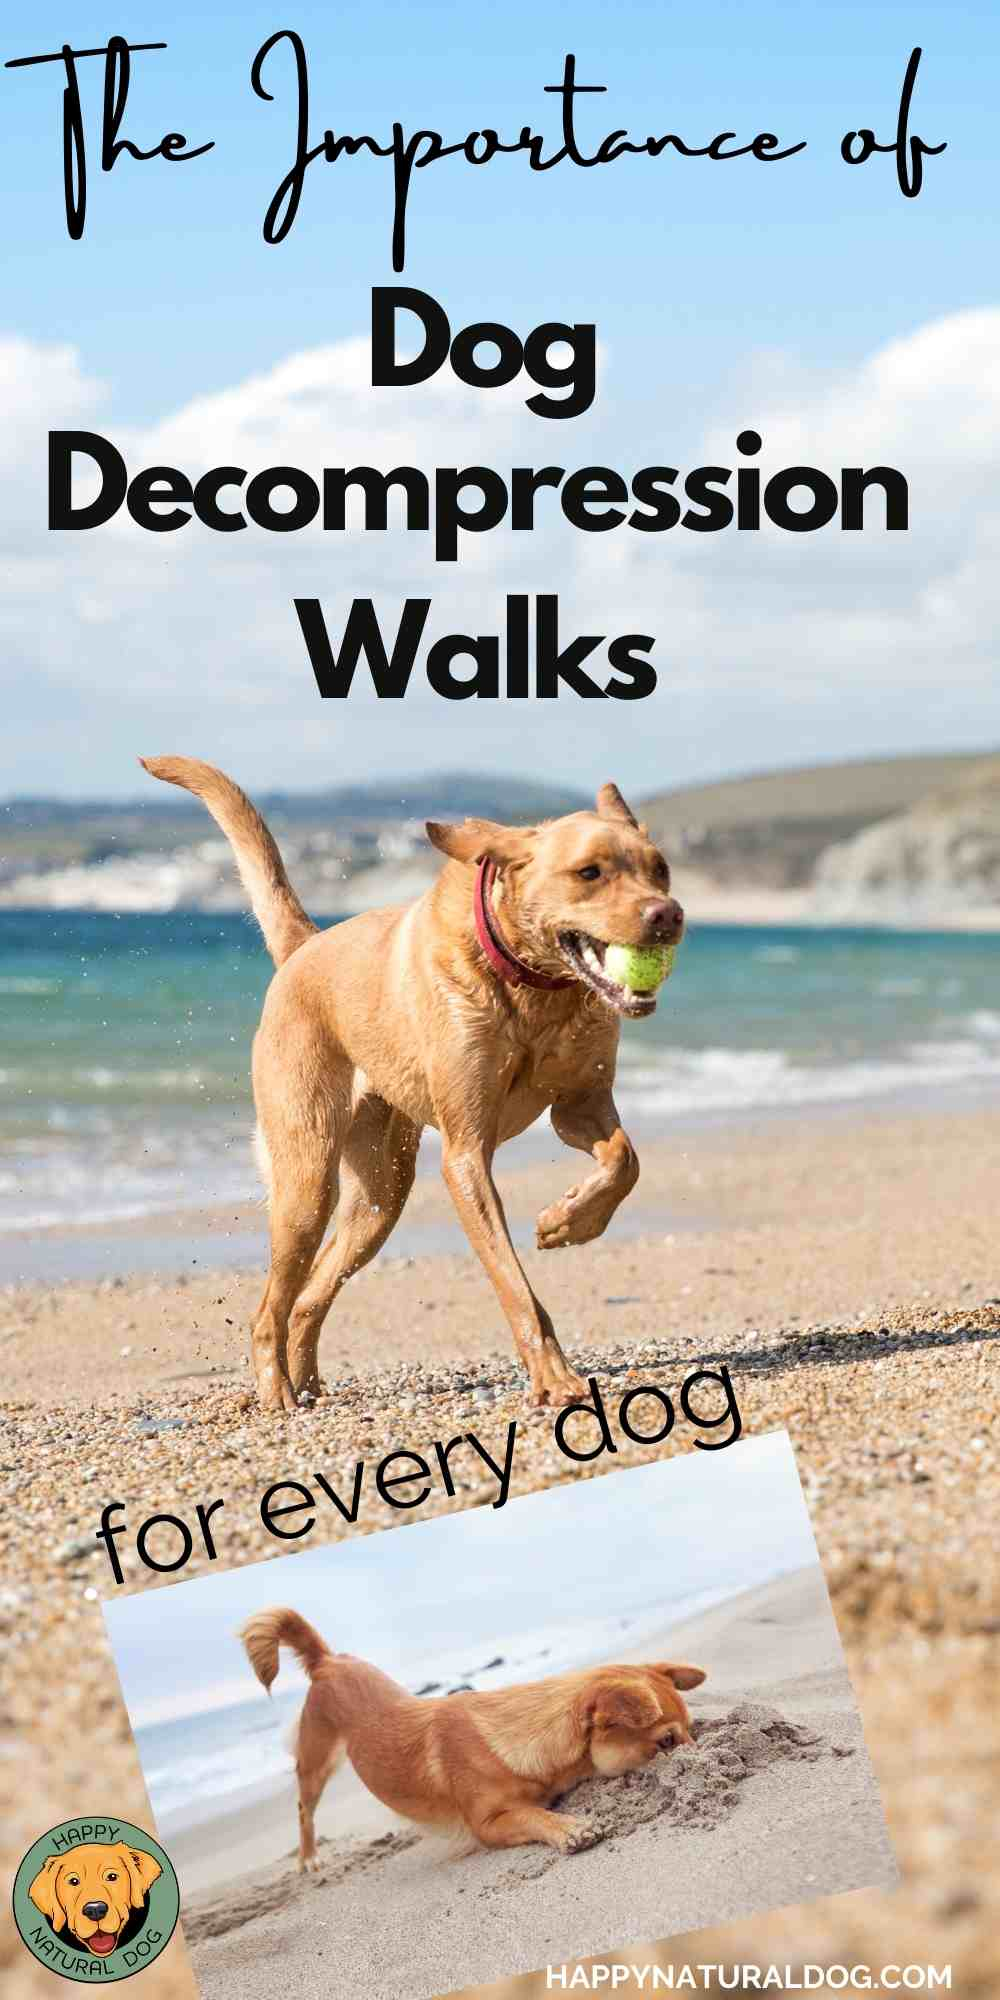 Dog Decompression Walks